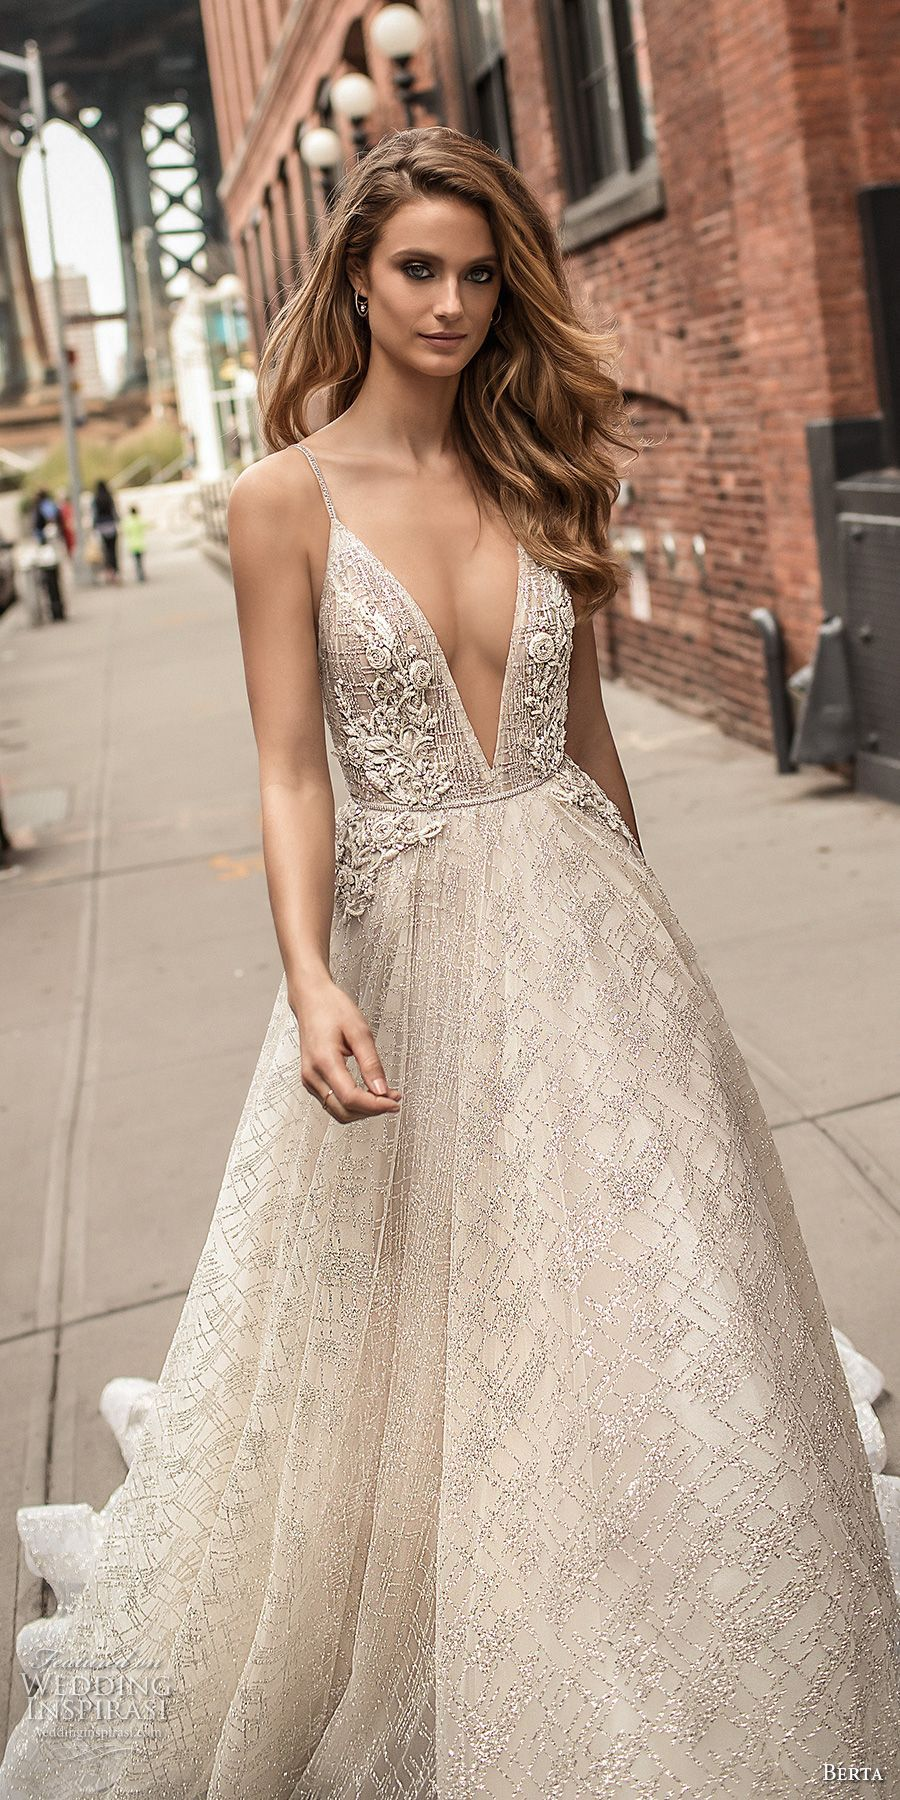 02e6ff4d7774 berta spring 2018 bridal spaghetti strap deep v neck full embellishment  sexy romantic a line wedding dress open back chapel train (2) zv -- Berta  Spring ...